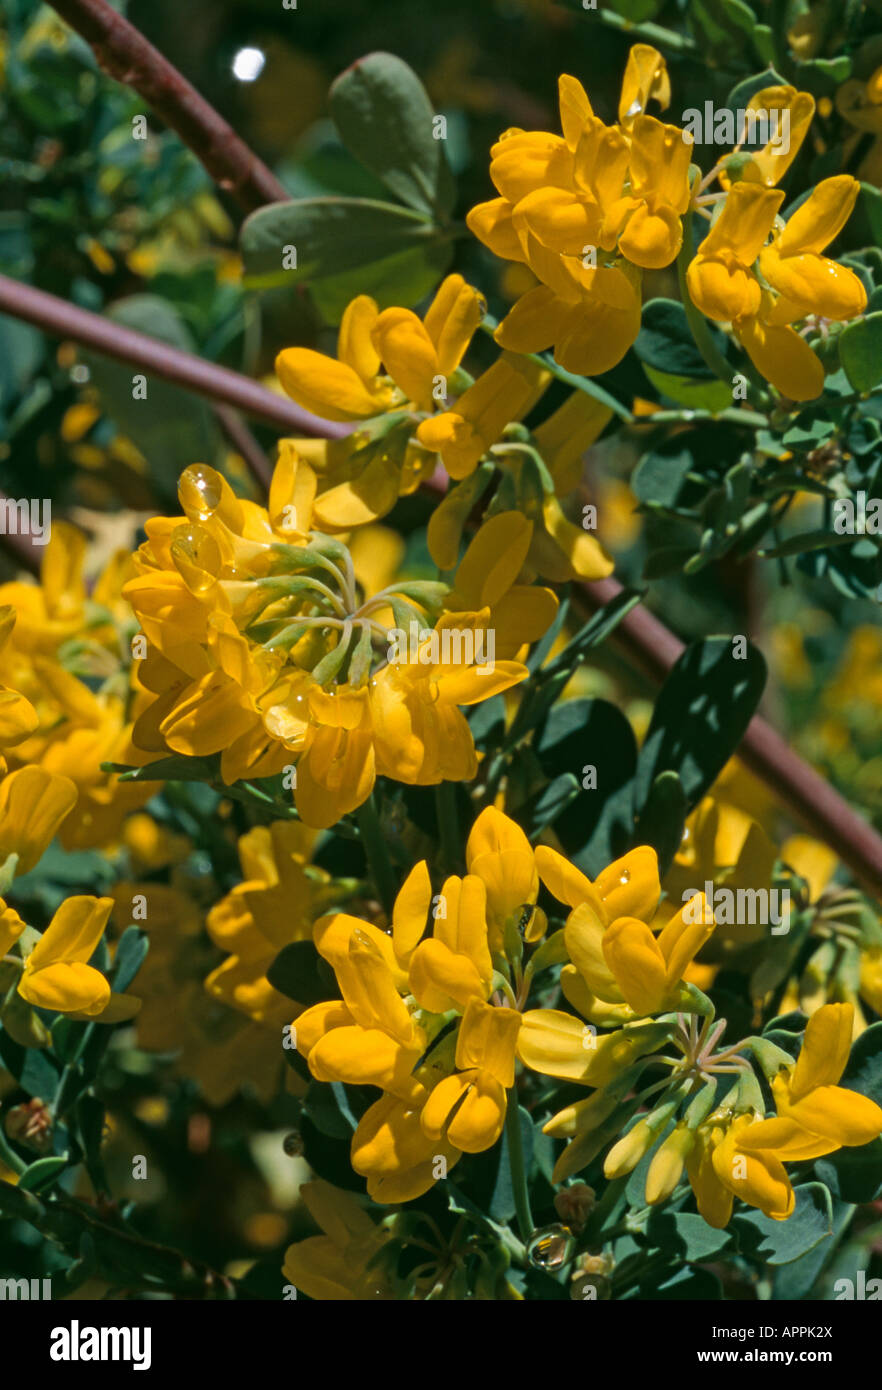 Coronilla fragrant yellow bush bees enticement - Stock Image